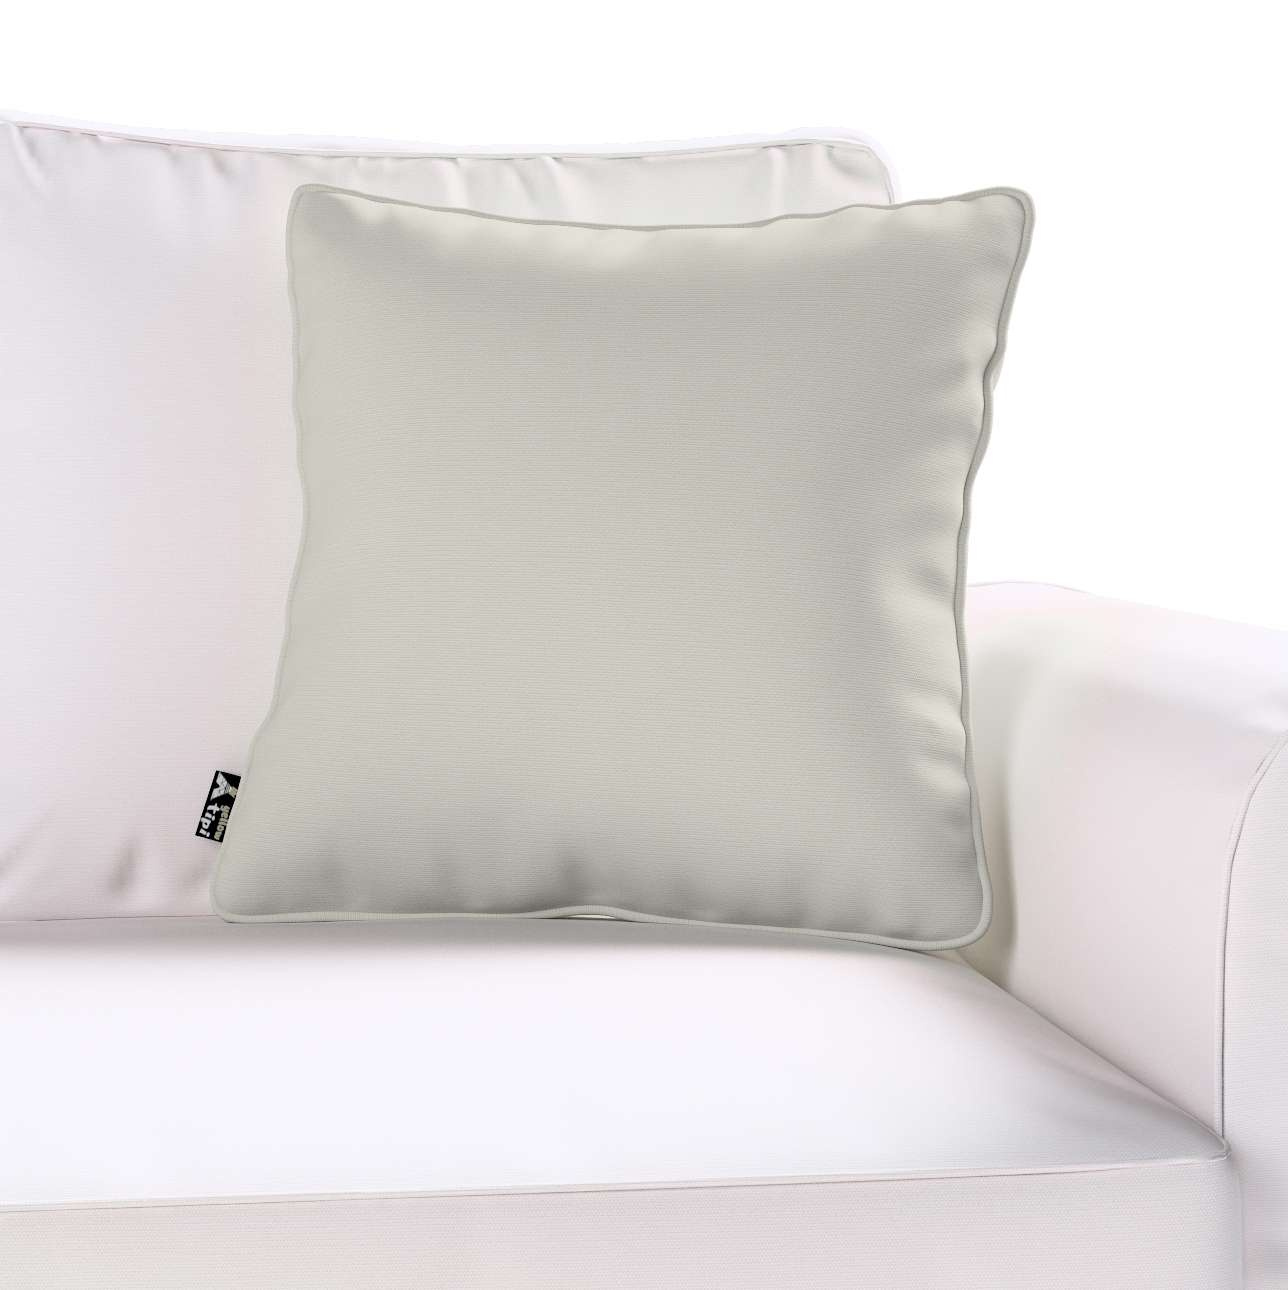 Lola piped cushion cover in collection Cotton Story, fabric: 702-31